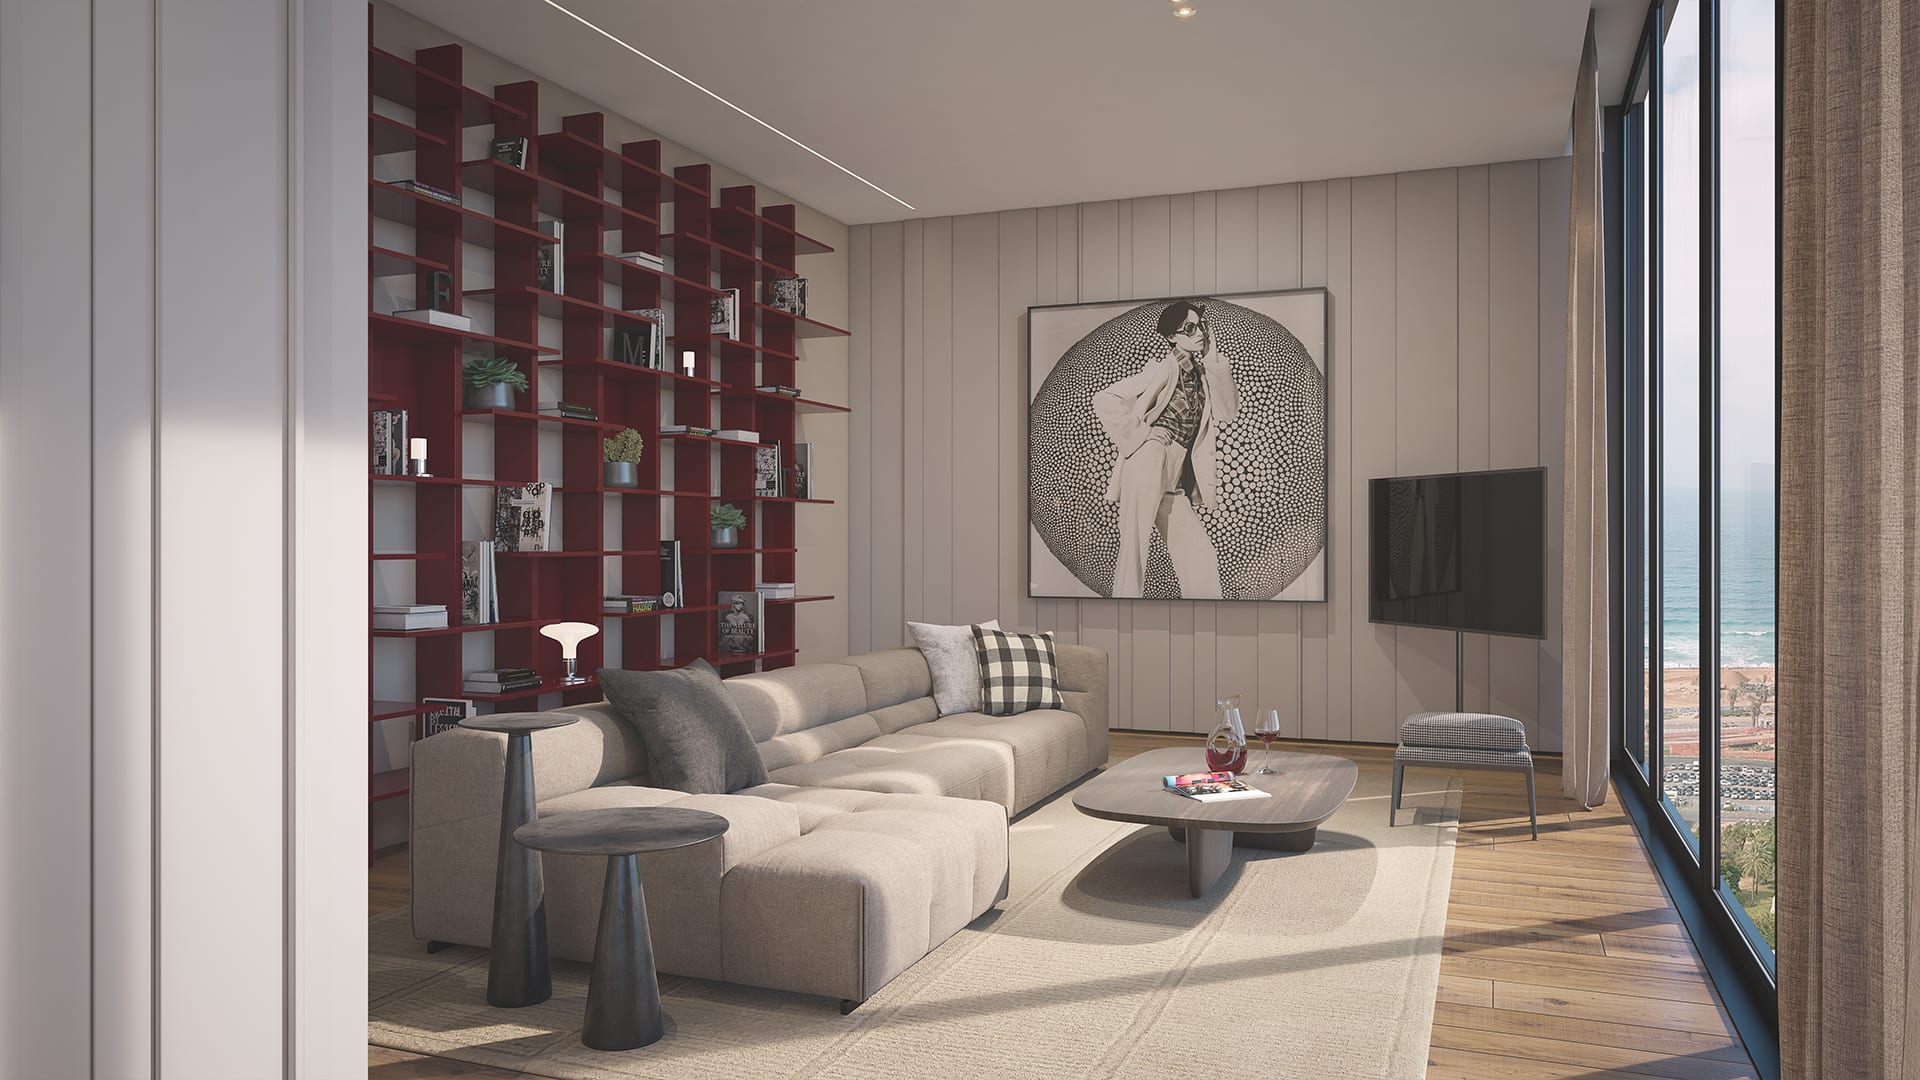 Maayan-Golan_Architectural-Visualization_interior-design-visualization_ white-city-penthouse_design-tal-tamir_family-room_03